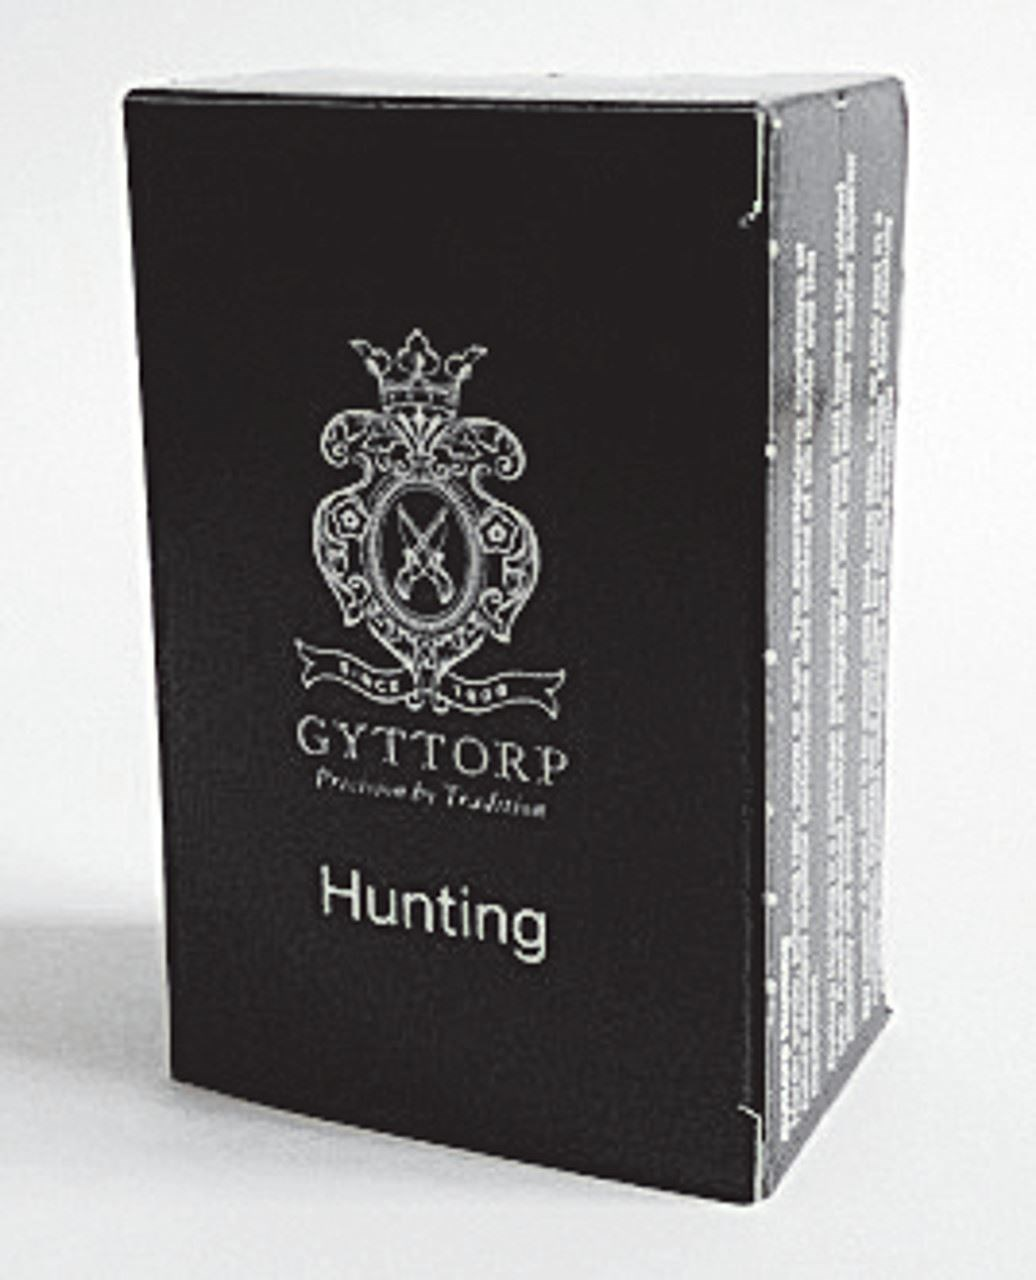 Gyttorp Hunting 16/67 US 3, 26 gr